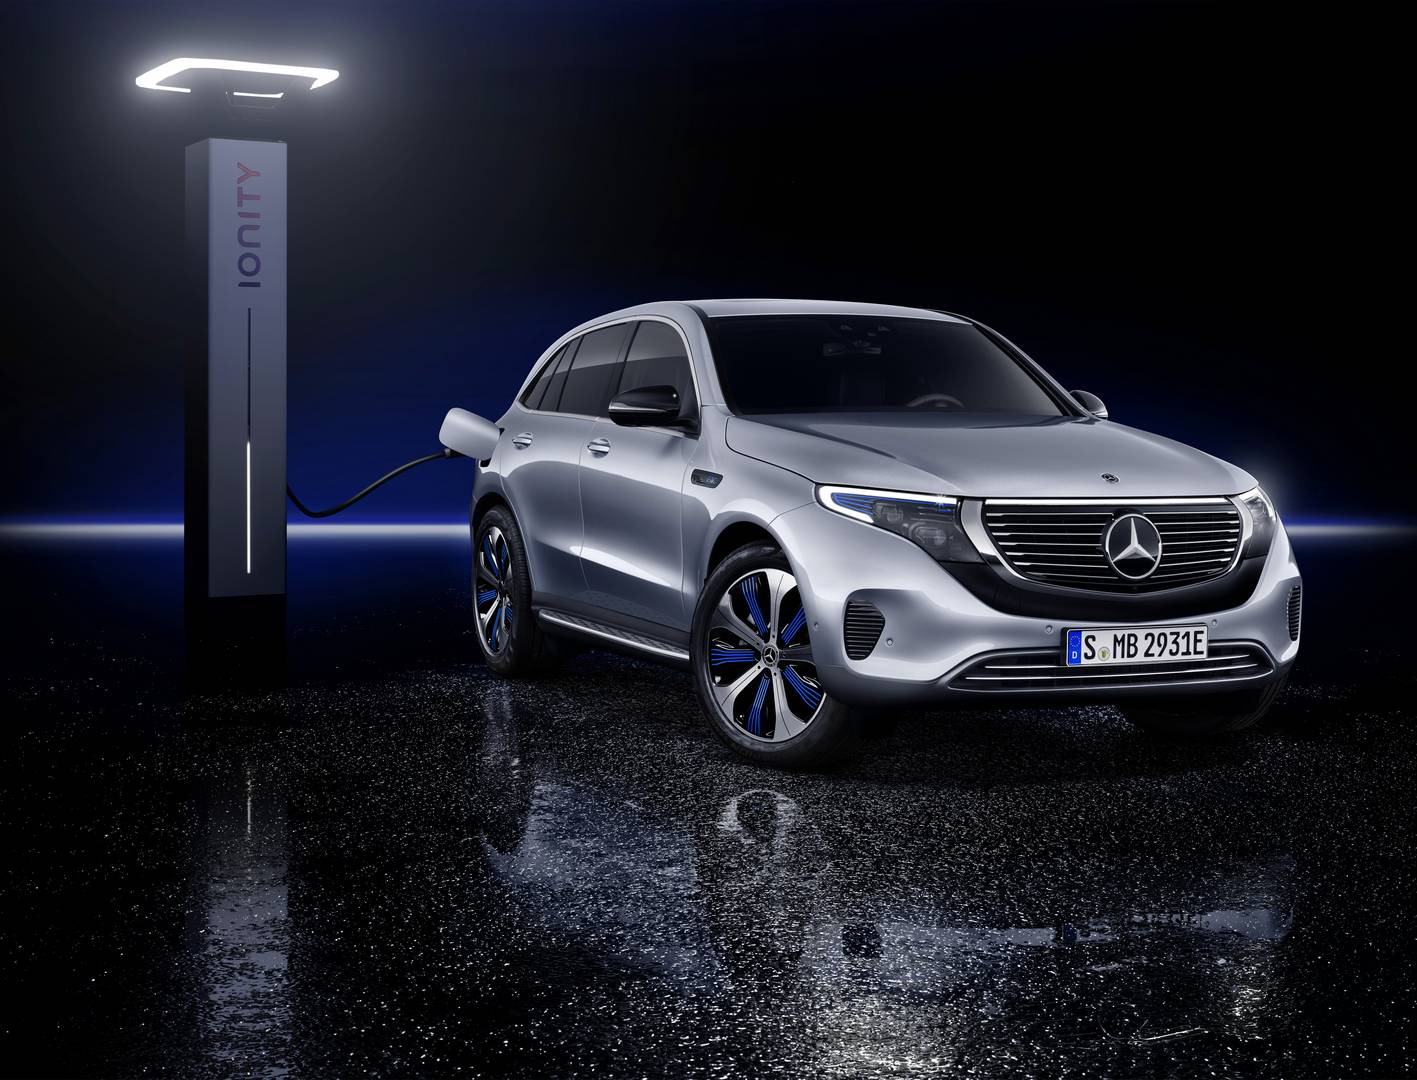 Different Suv Models >> All New Mercedes-Benz EQC Revealed - Full Electric SUV - GTspirit